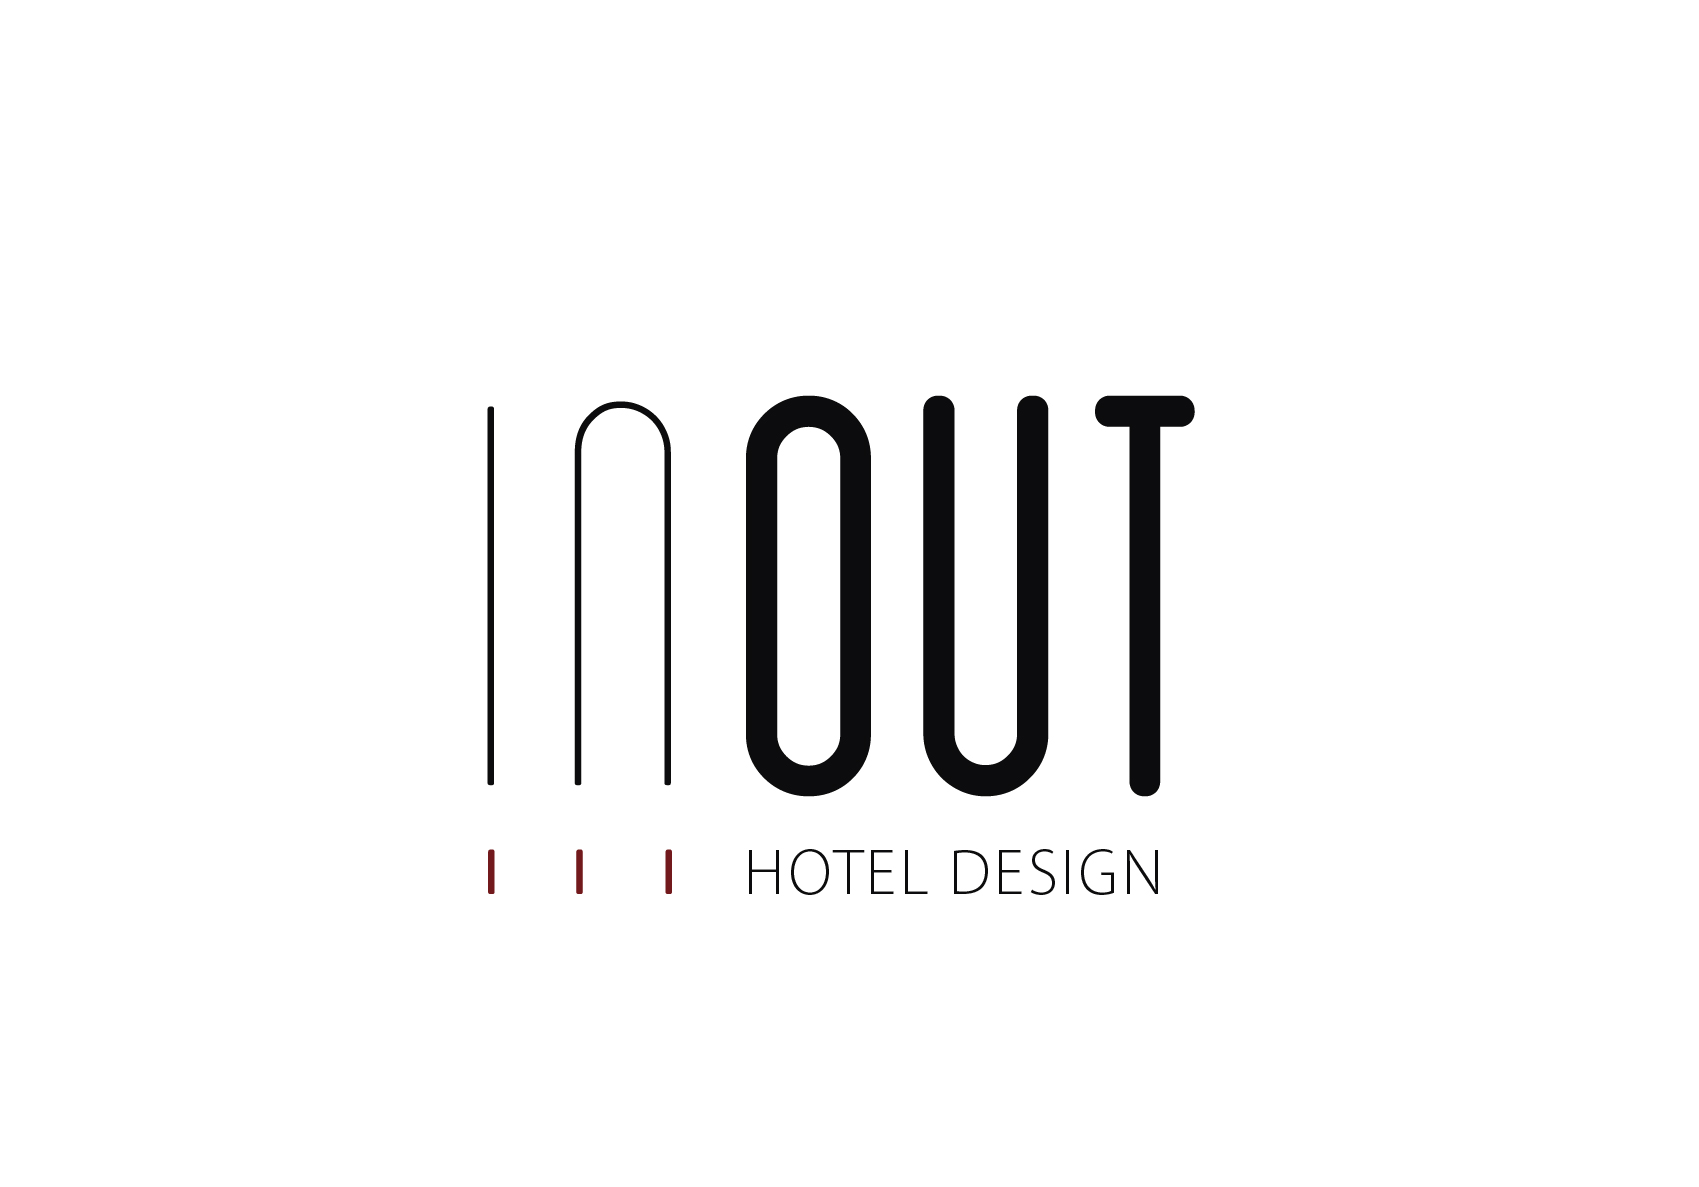 In&out Hotel Design